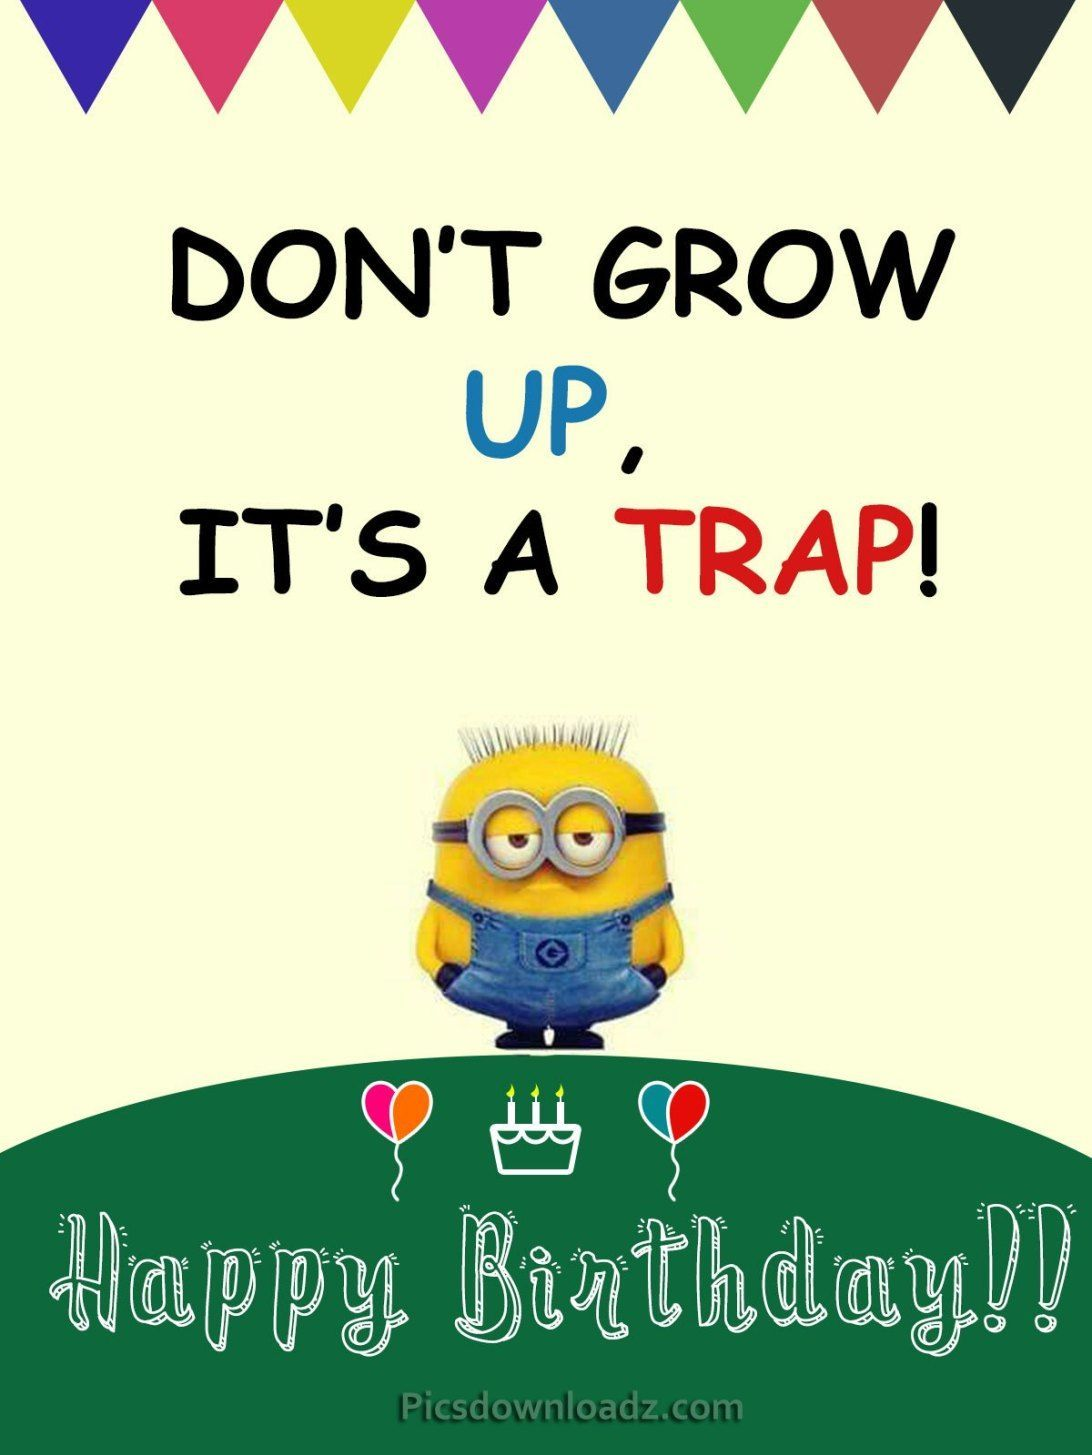 Funny Happy Birthday Wishes For Best Friend Happy Birthday Quotes Happybirthda Happy Birthday Quotes Funny Birthday Wishes Funny Funny Happy Birthday Wishes